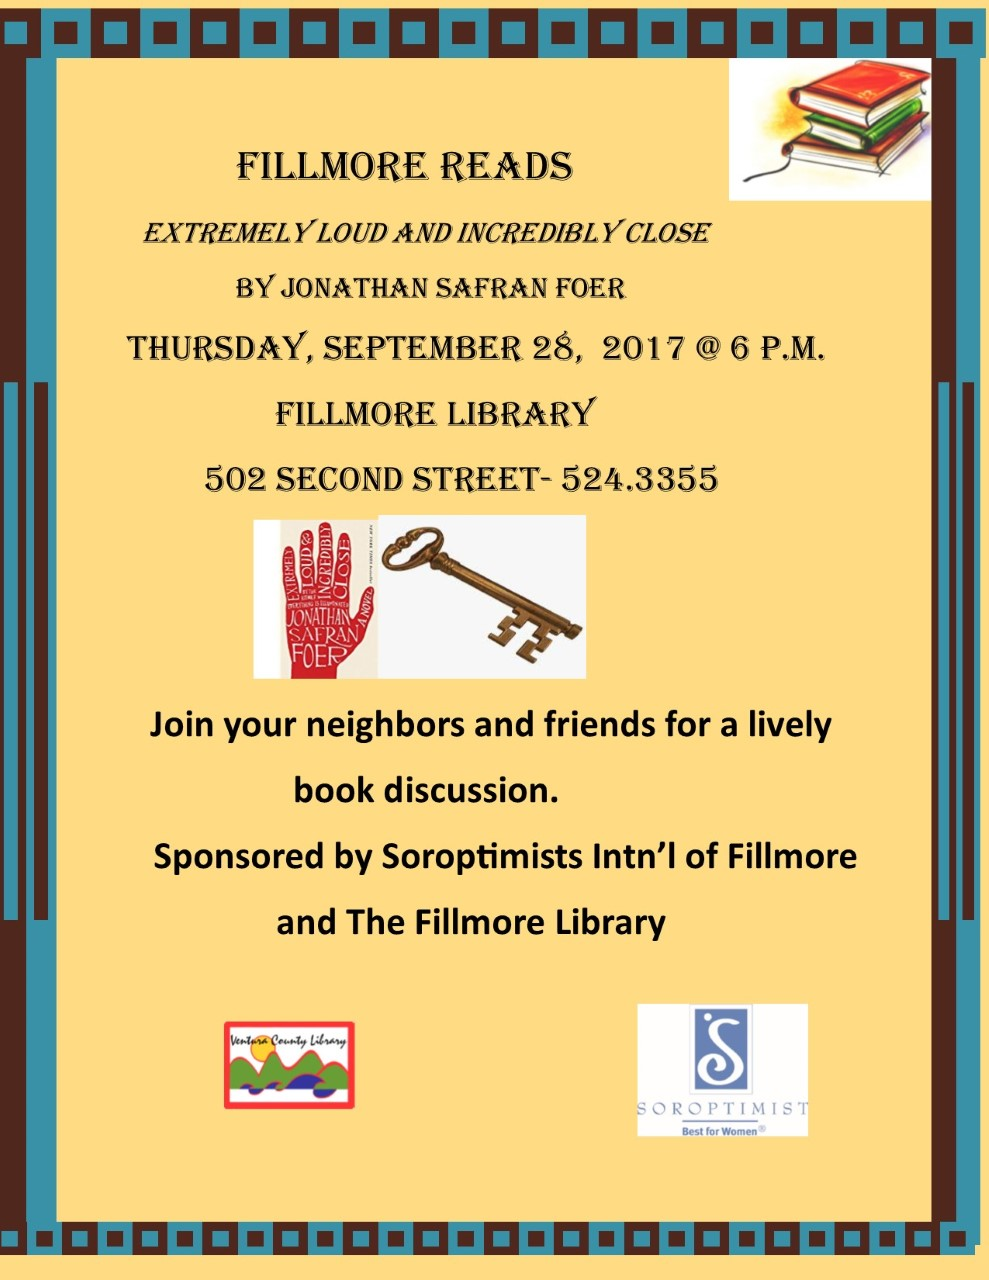 Thurs Sept 28, 2017 Fillmore Reads.jpg